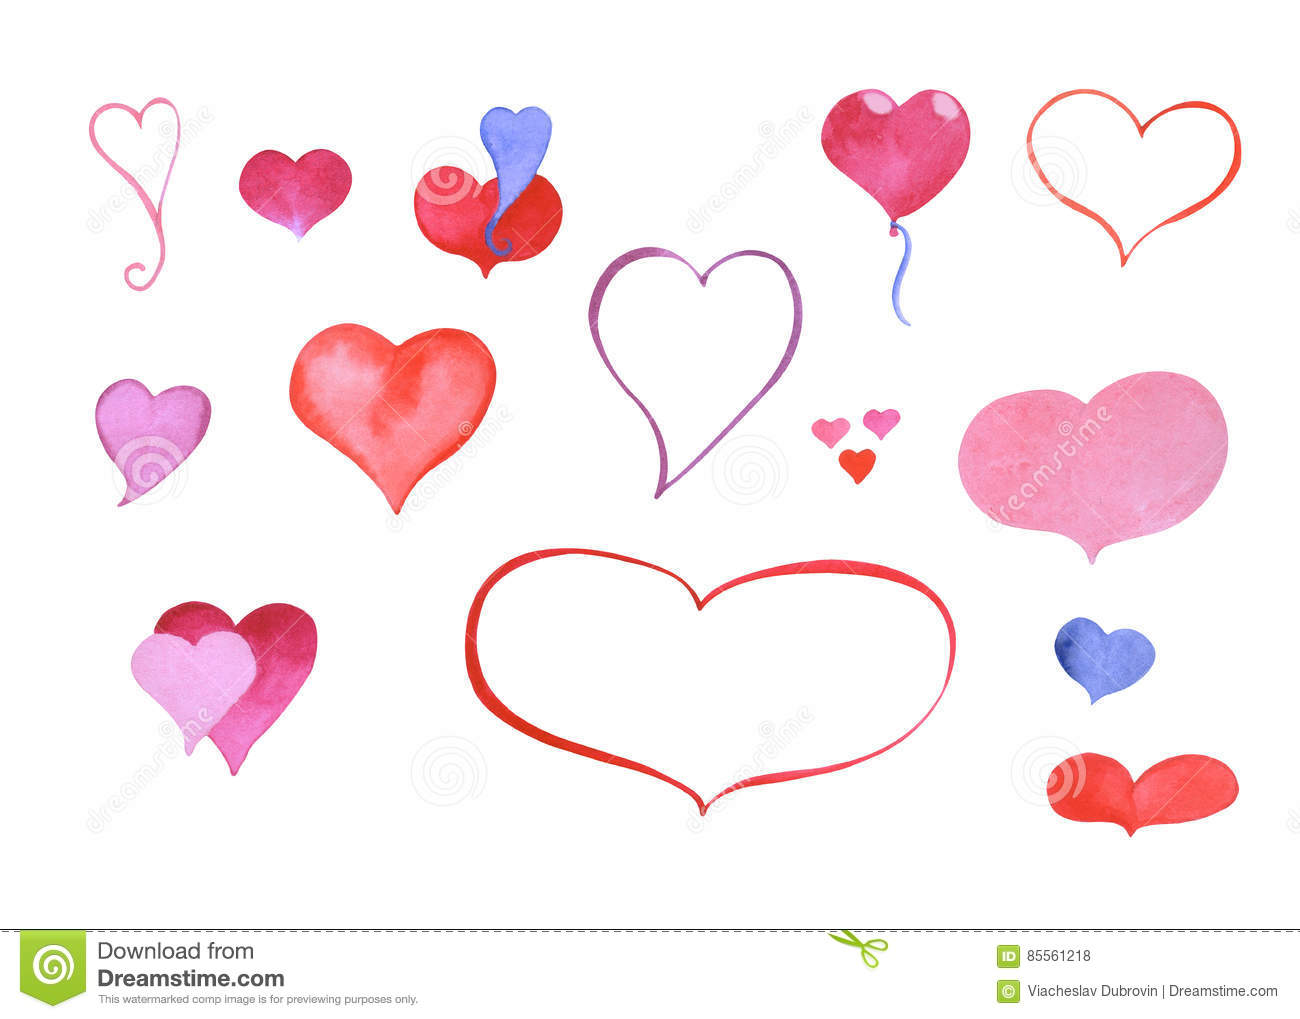 Watercolor Hand Painted Heart Symbol Outlined And Colored Clipart